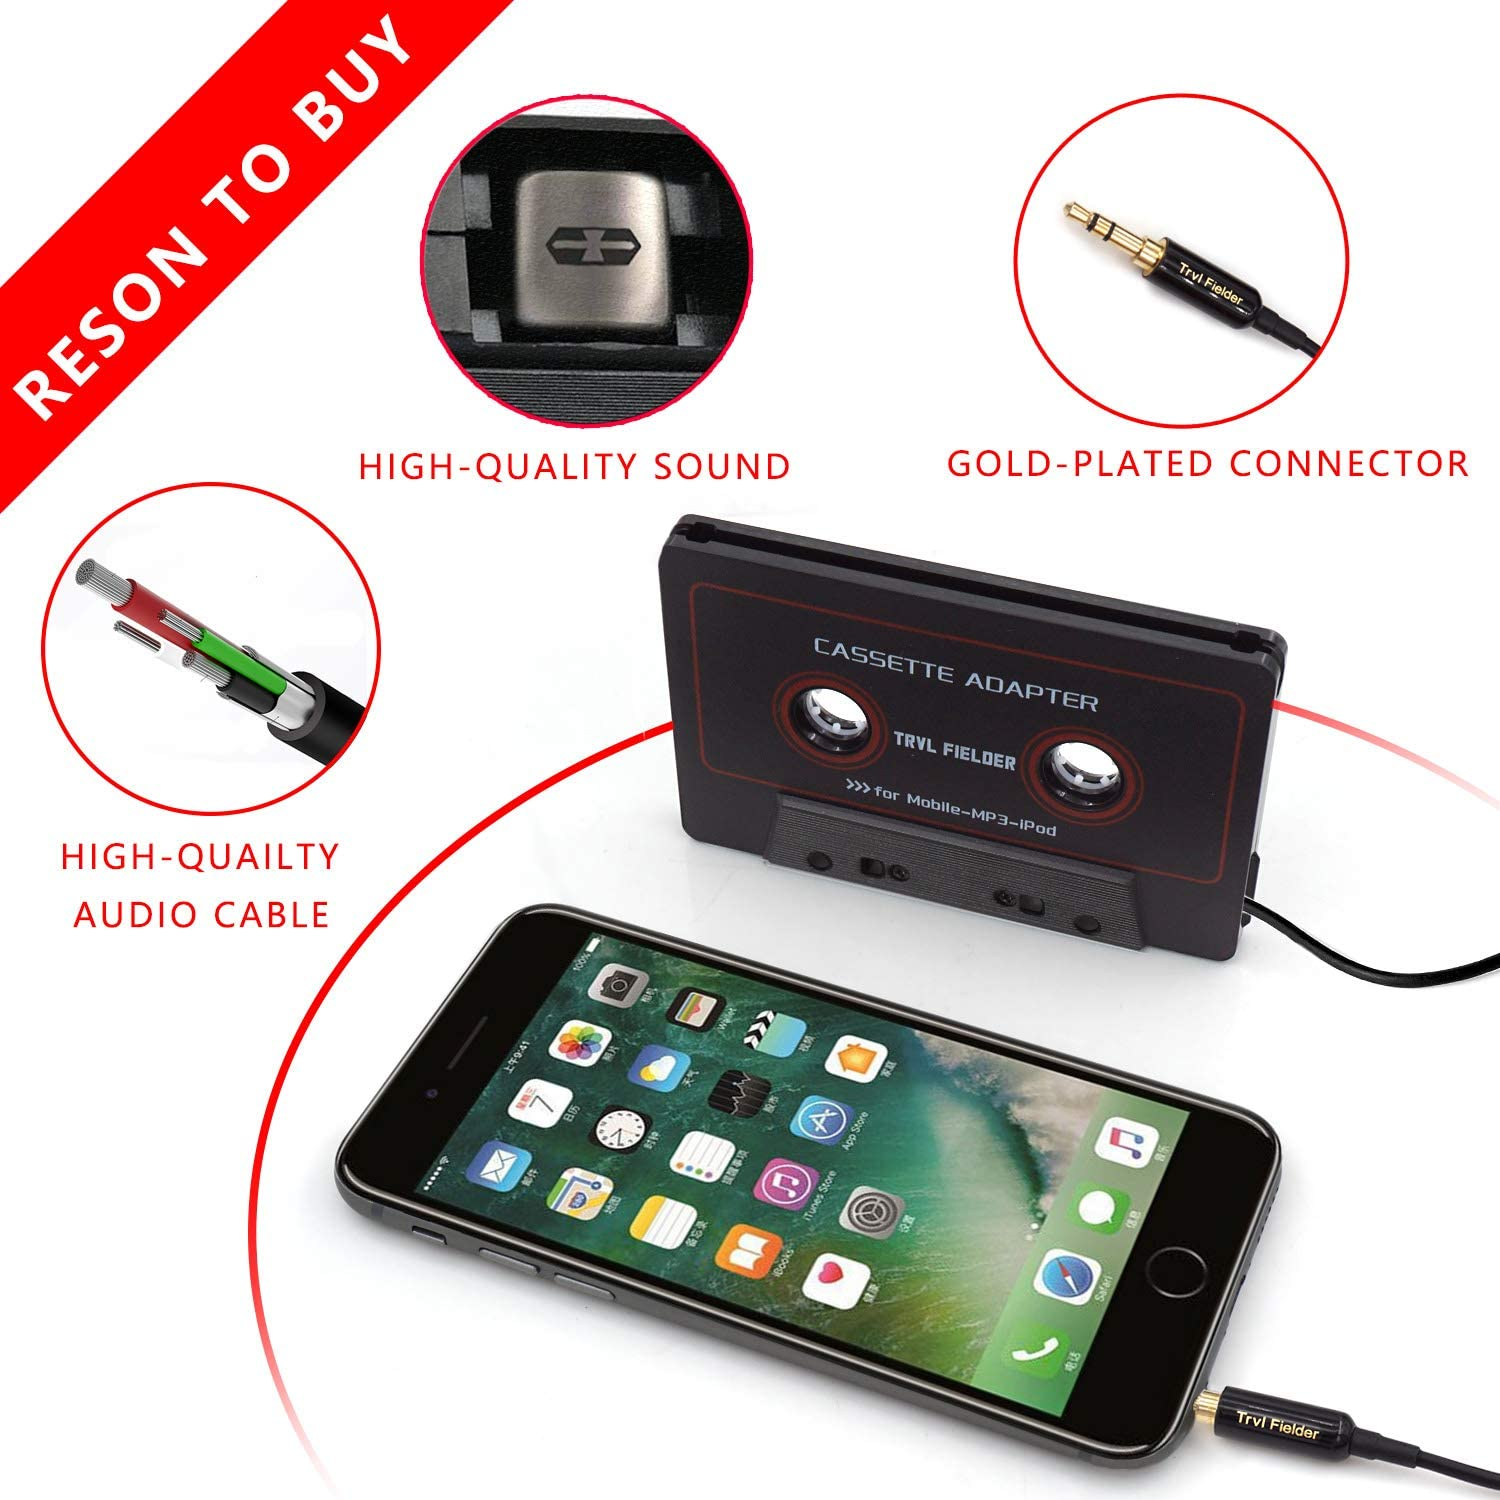 White Smartphones Reshow Cassette Adapter for Cars Vintage//Retro Music Converter MP3 Players or a Walkman in a Standard Vehicle Cassette Player Listen to iPods